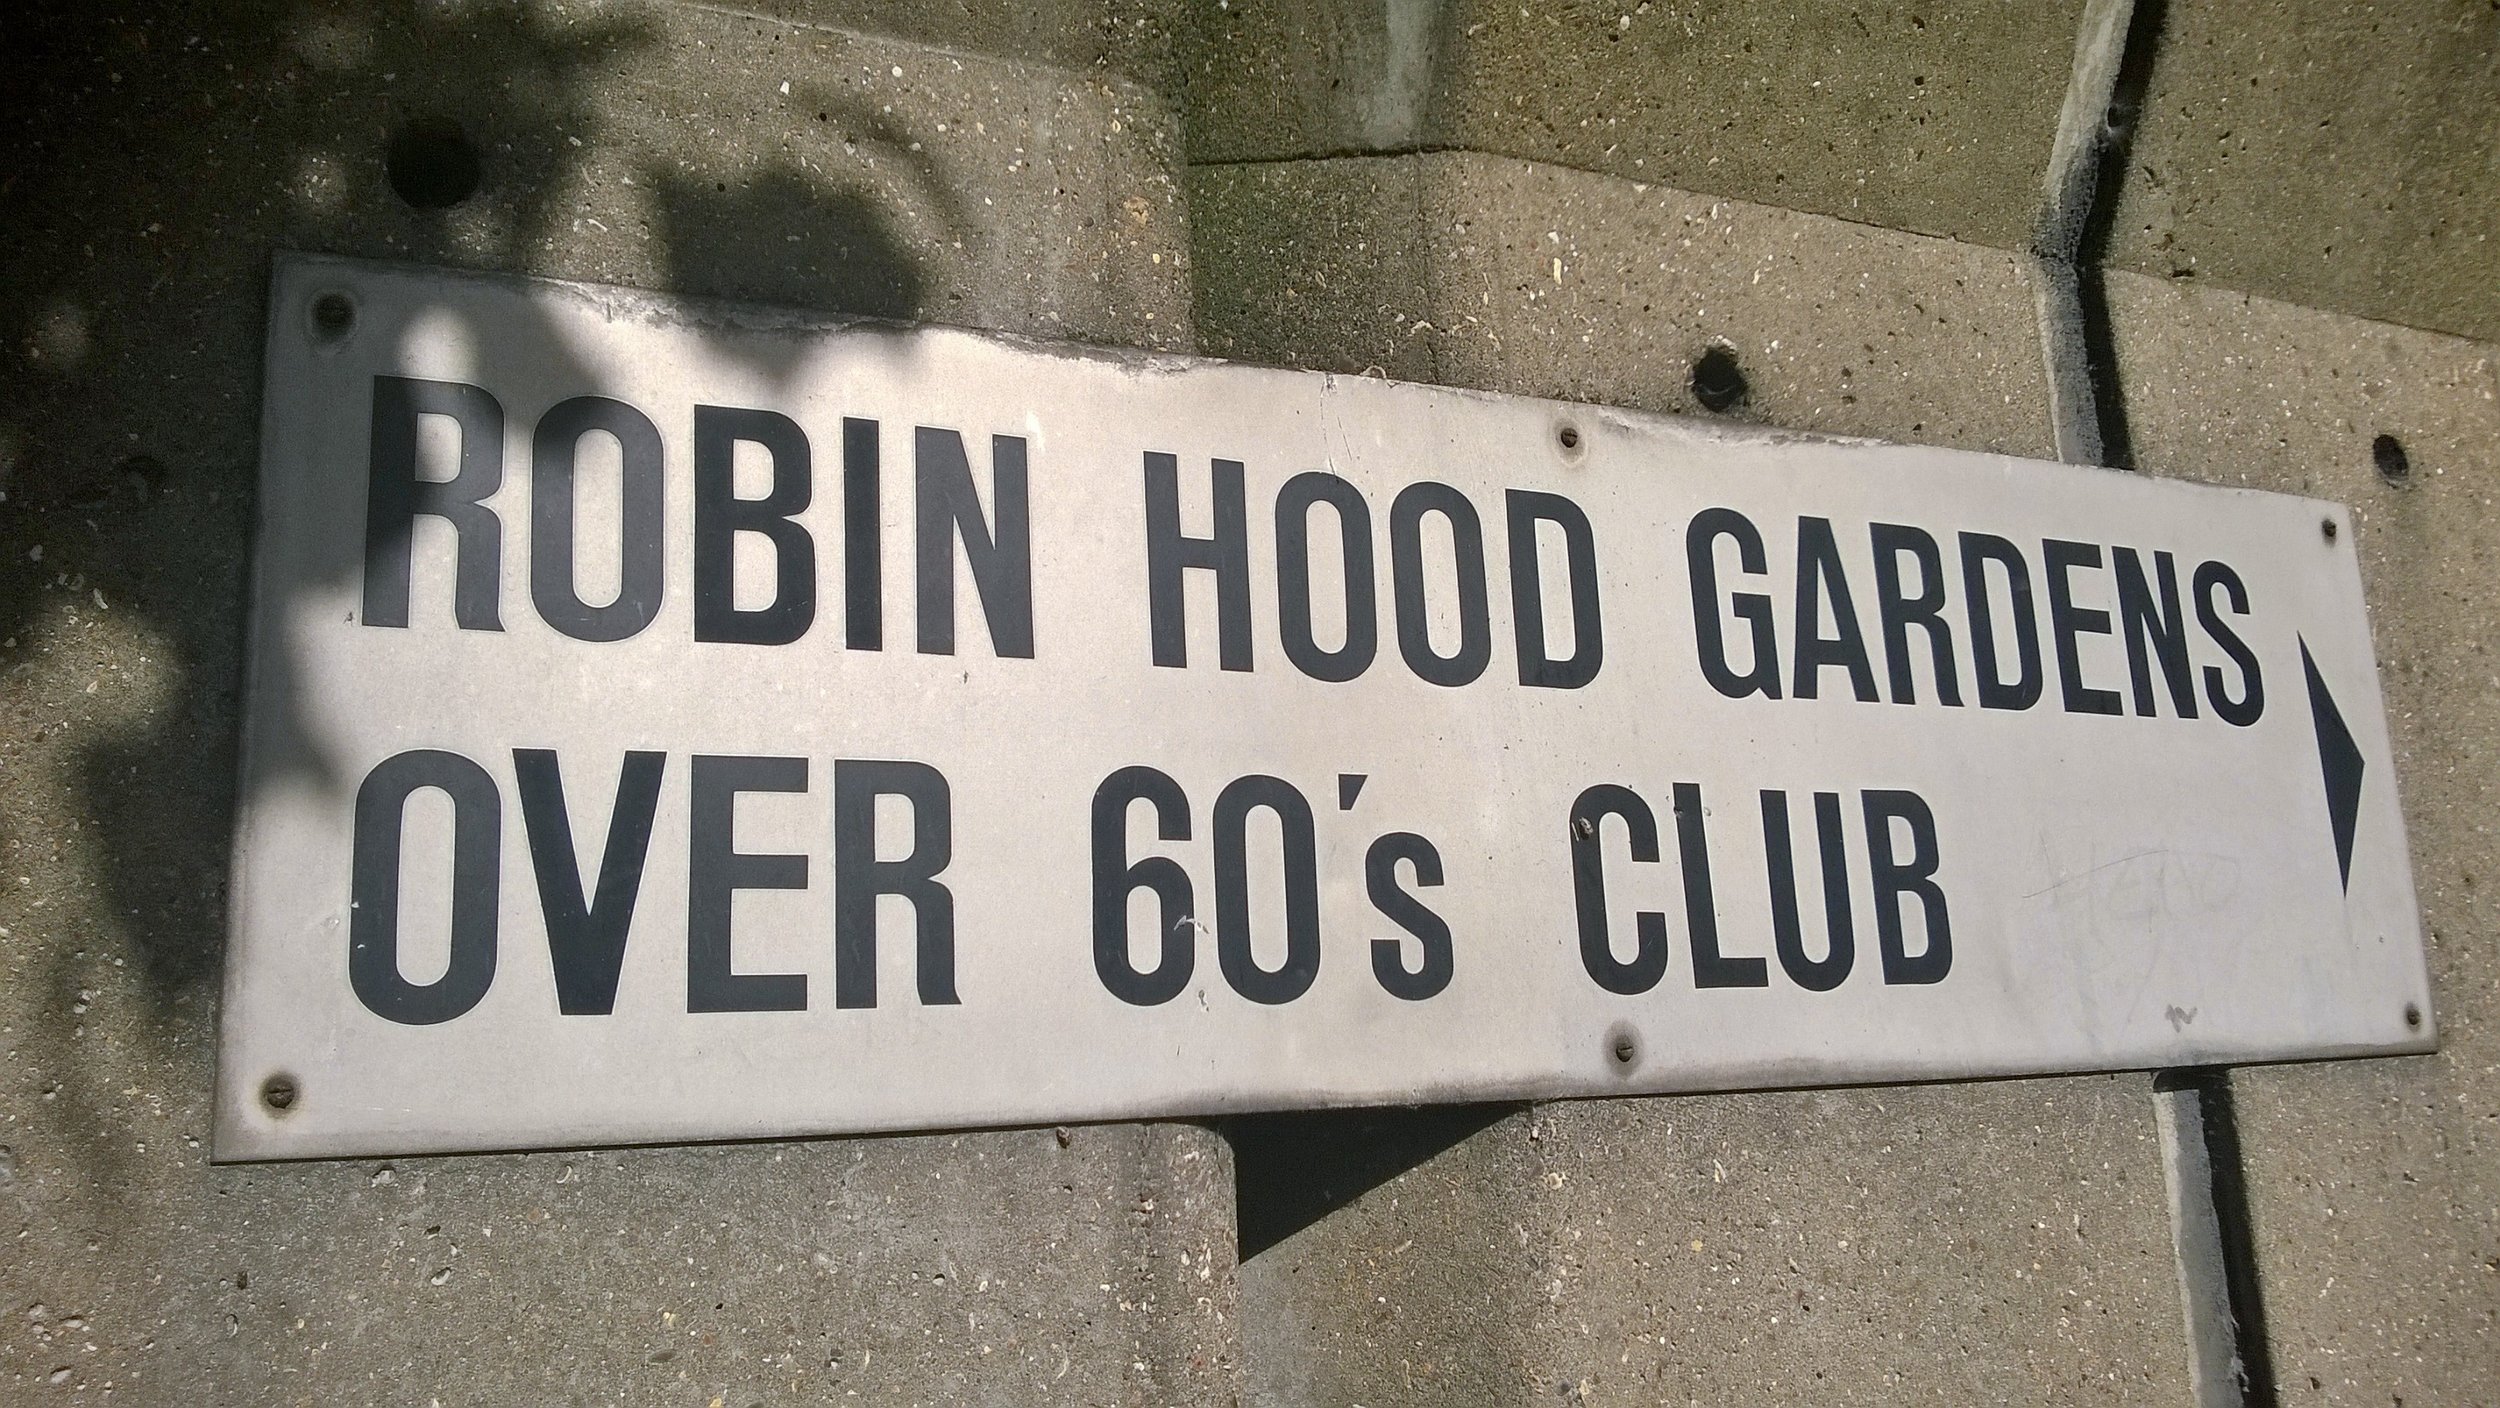 Over 60s Club sign.